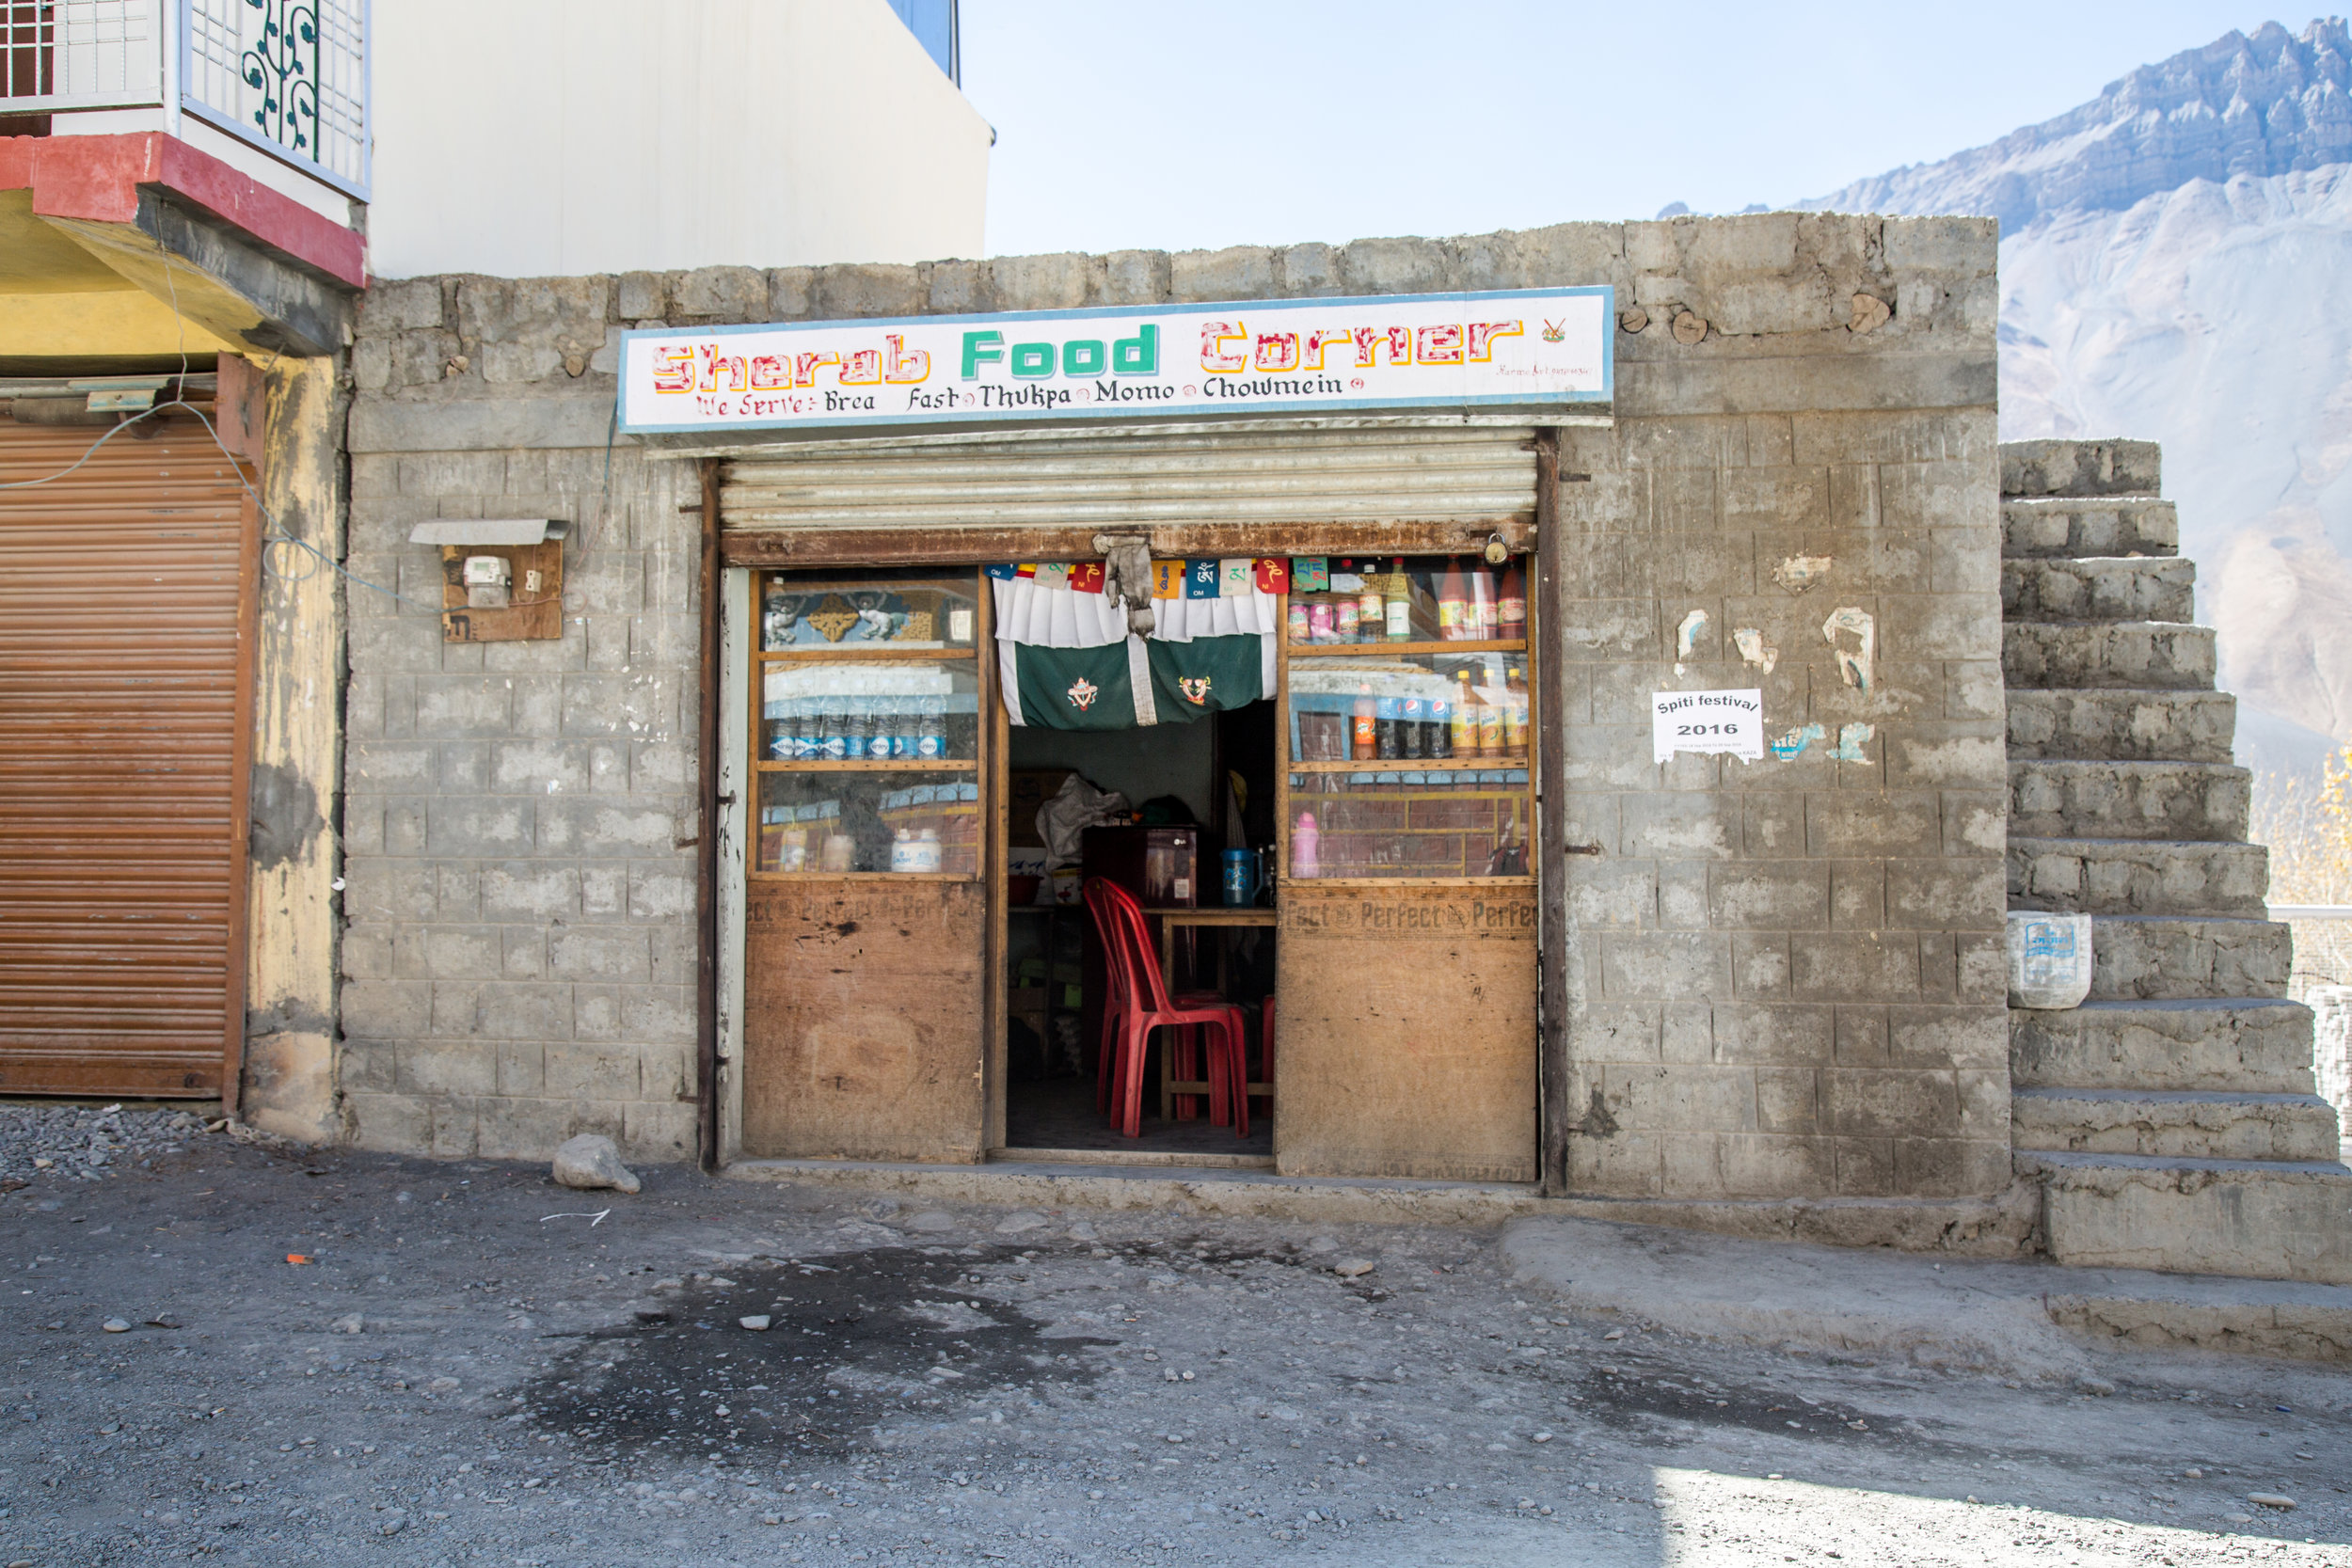 Best Tibetan homemade meal in Kaza! You will find this place at the main square, near the gas station.